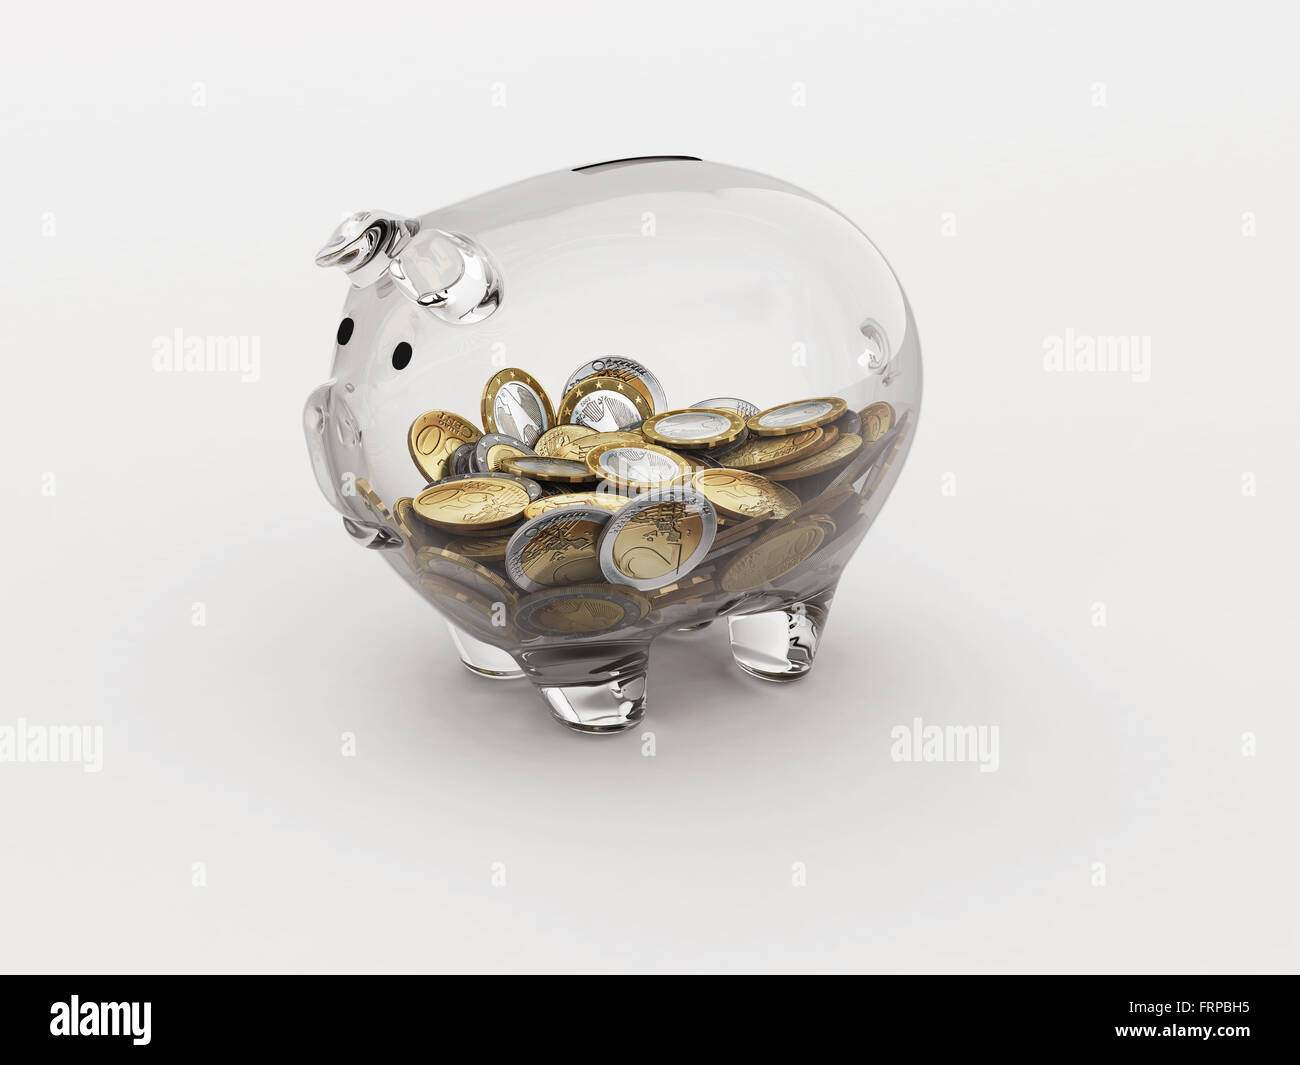 Economic transparency - Stock Image